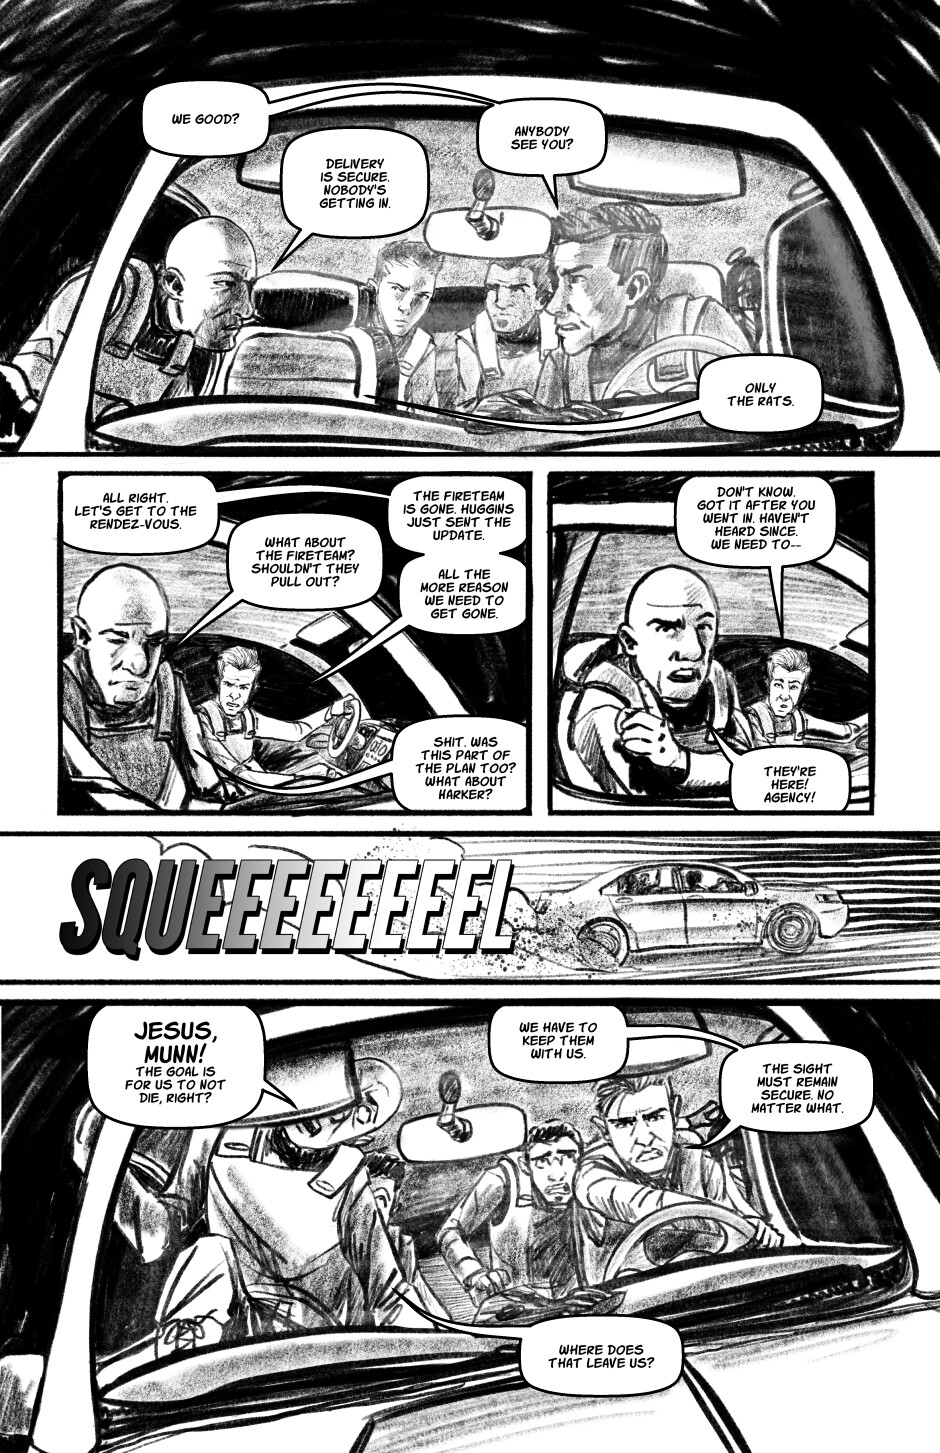 Munn's Last Stand Page 2